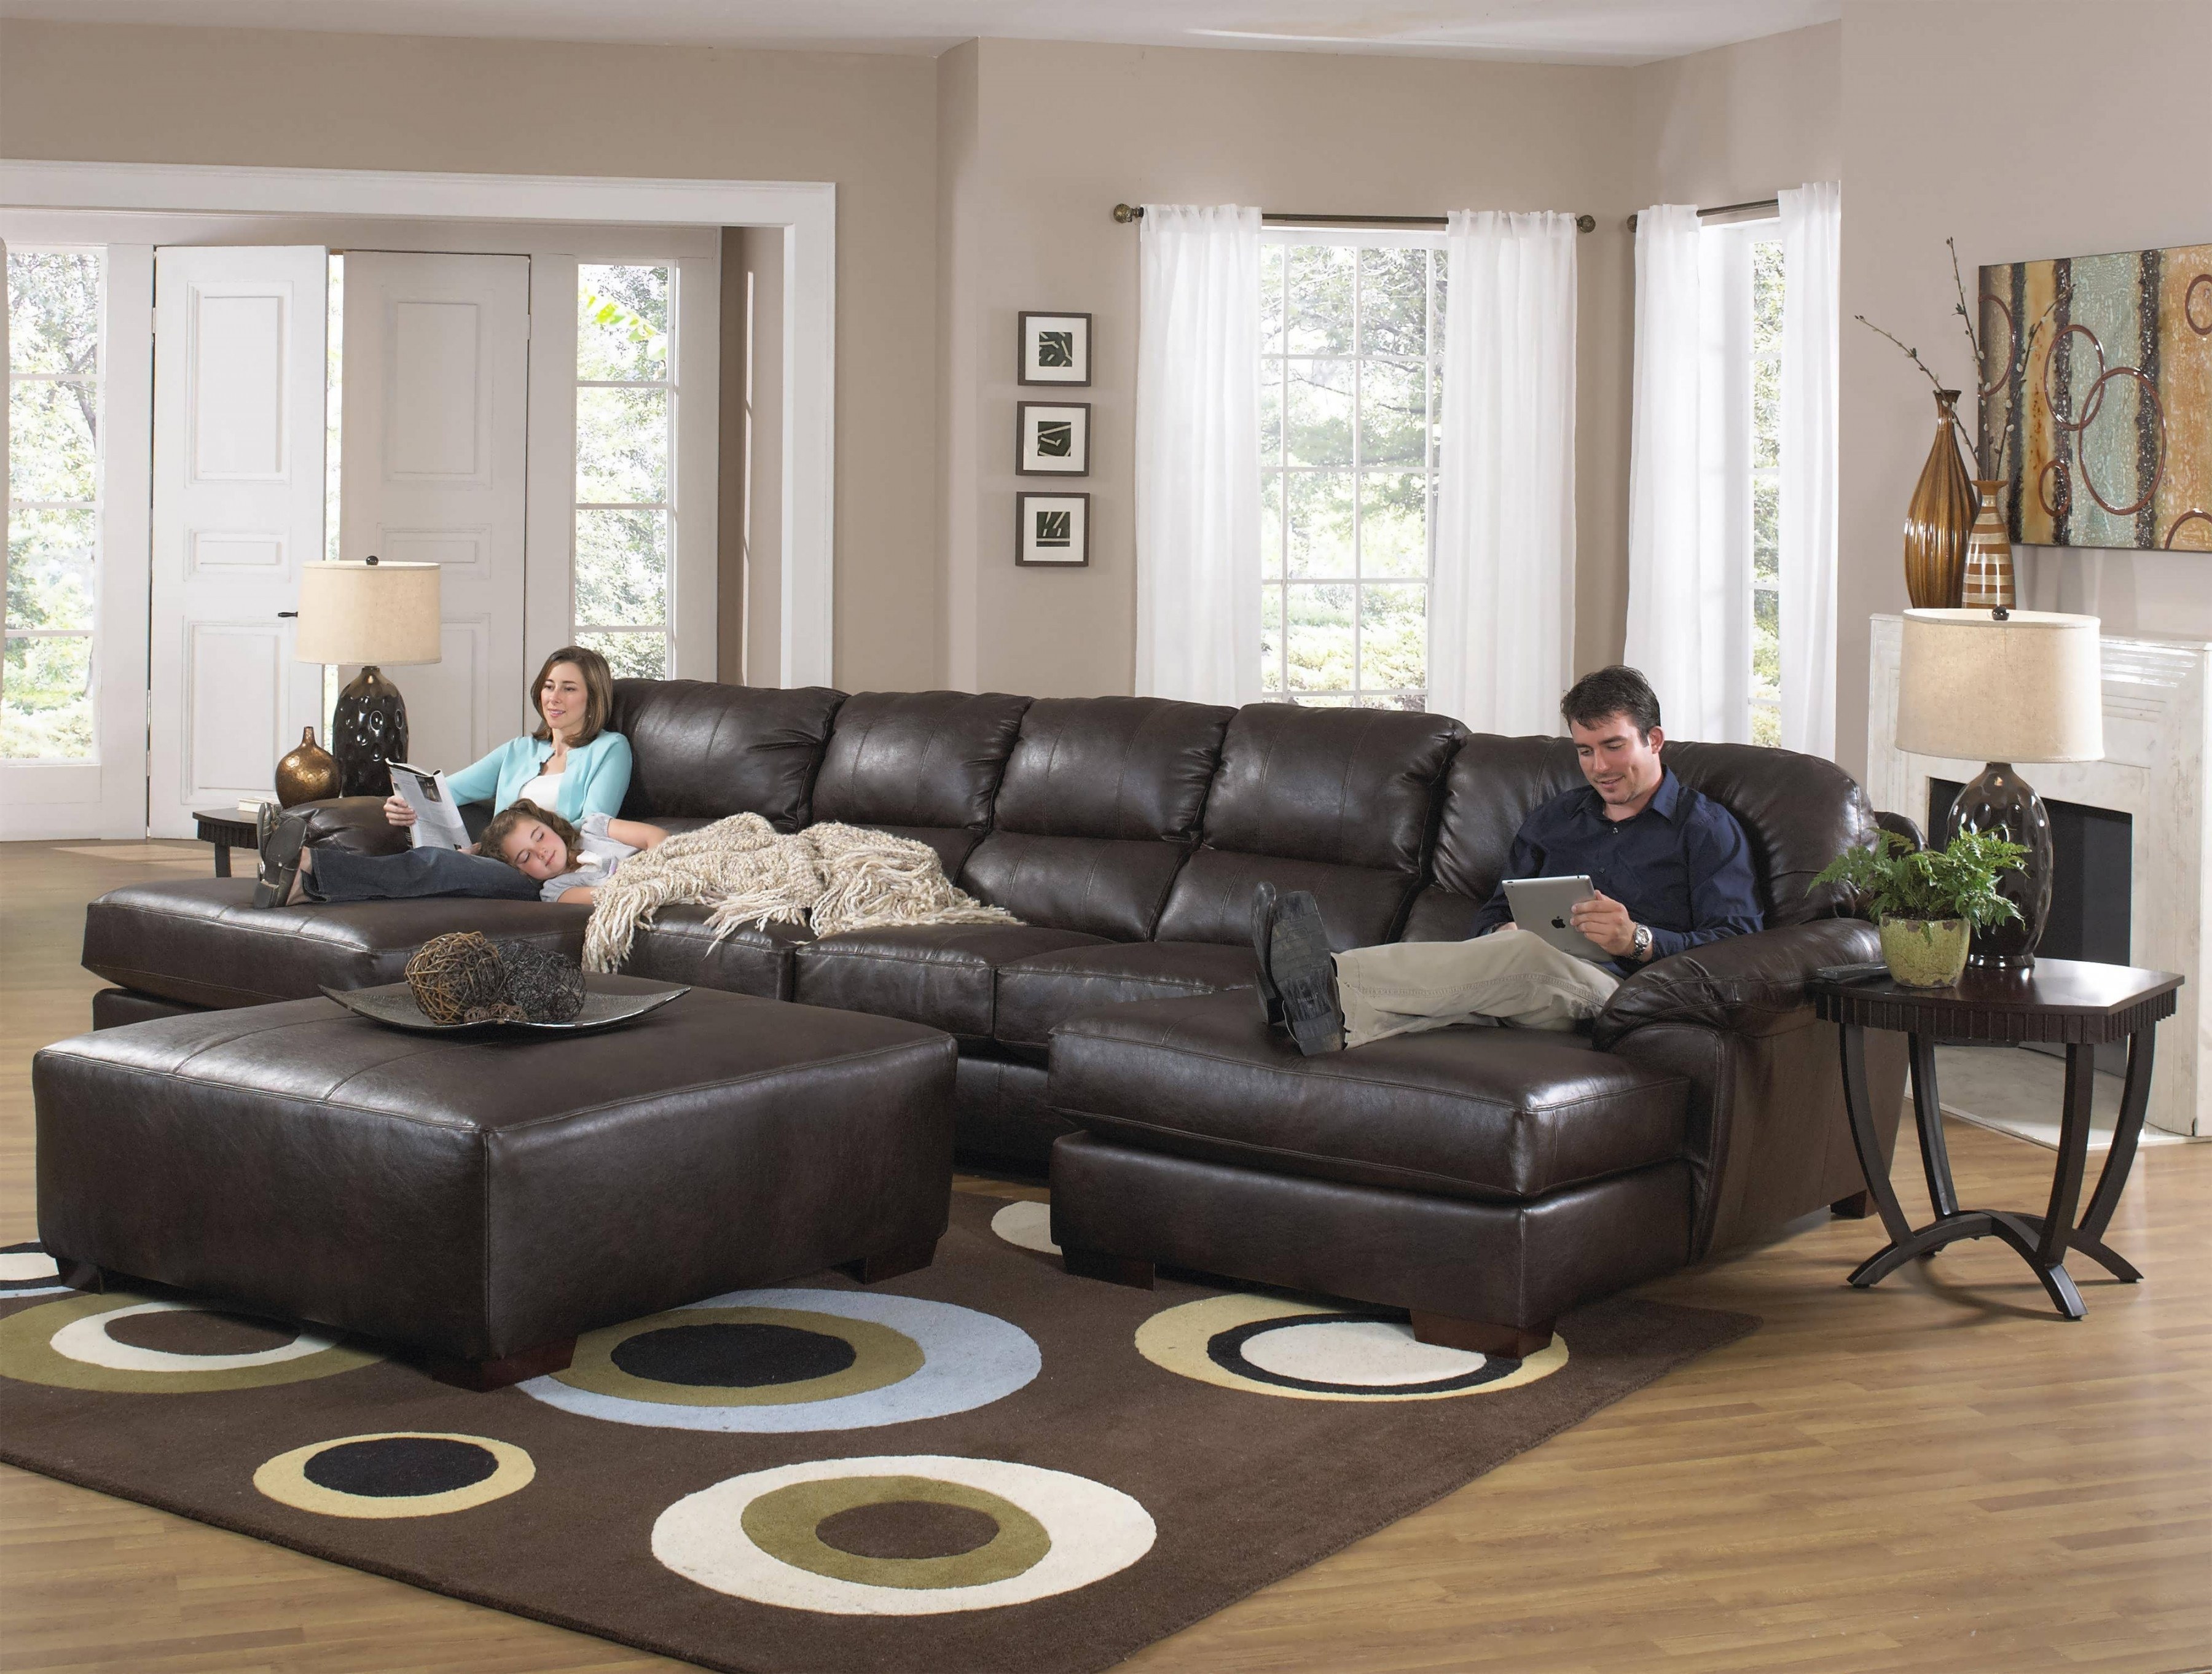 Sofa : U Shaped Sofa Reclining Sectional With Chaise Sleeper | Home For Reclining U Shaped Sectionals (View 4 of 10)